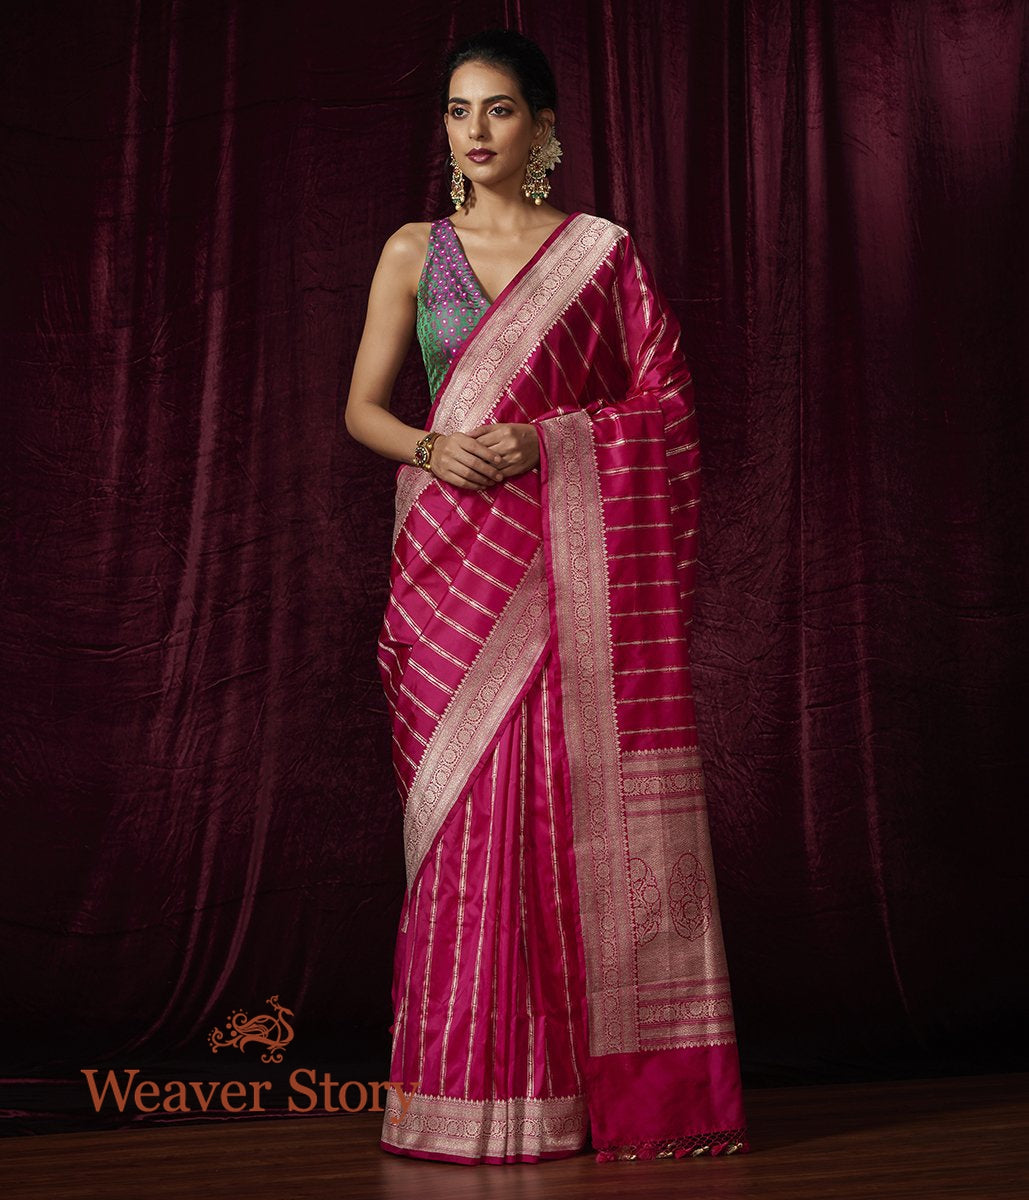 Handwoven Pink Katan Silk Saree with Zari Stripes